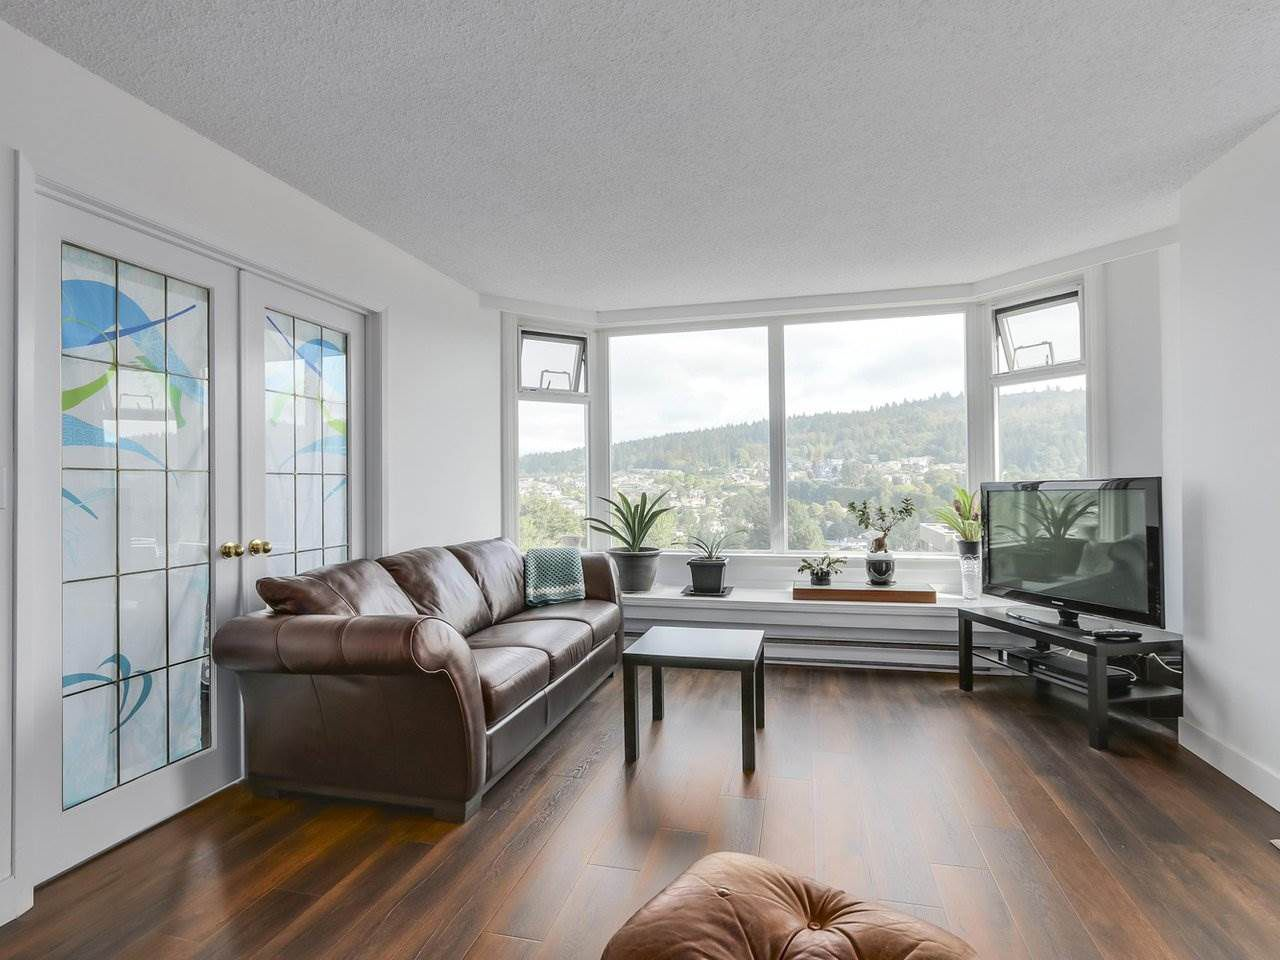 """Main Photo: 1706 7321 HALIFAX Street in Burnaby: Simon Fraser Univer. Condo for sale in """"AMBASSADOR"""" (Burnaby North)  : MLS®# R2301464"""